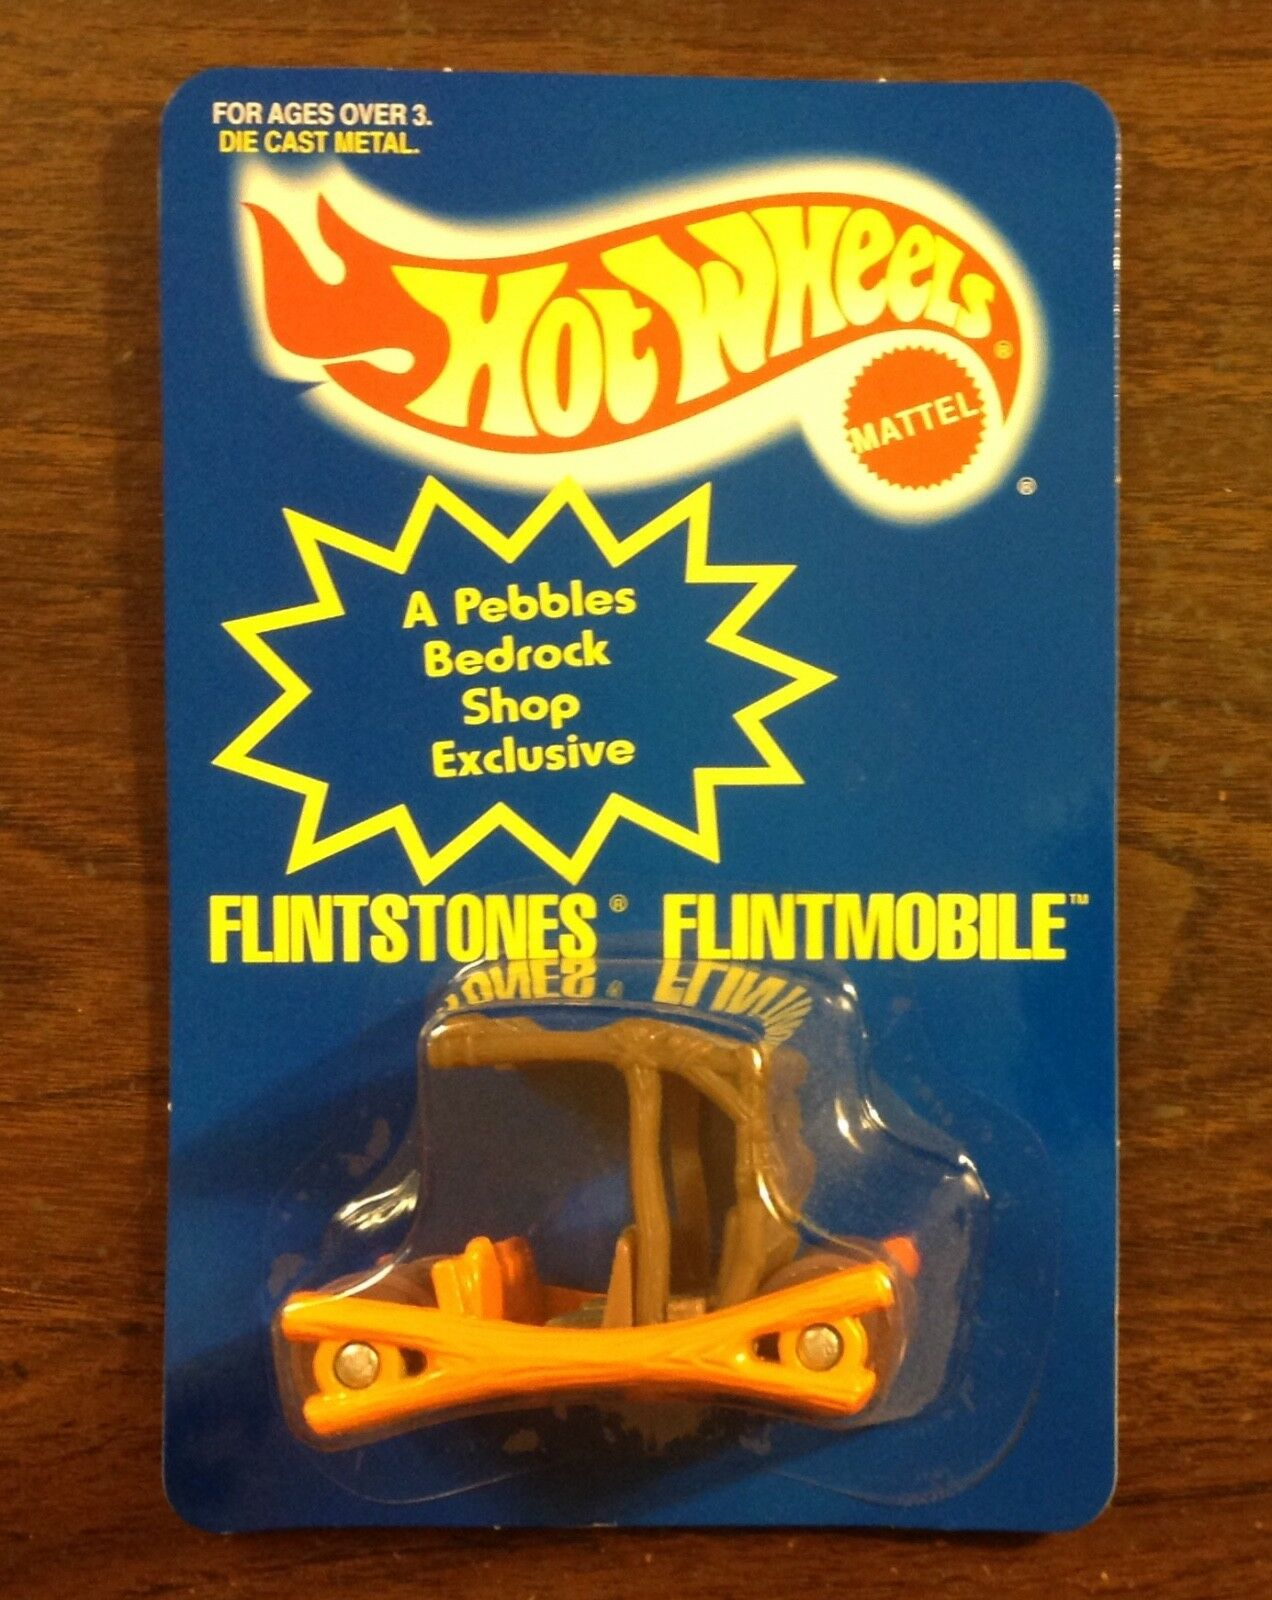 Menge (5) flintsones hot wheels flintmobile exklusive mattel hanna - barbera